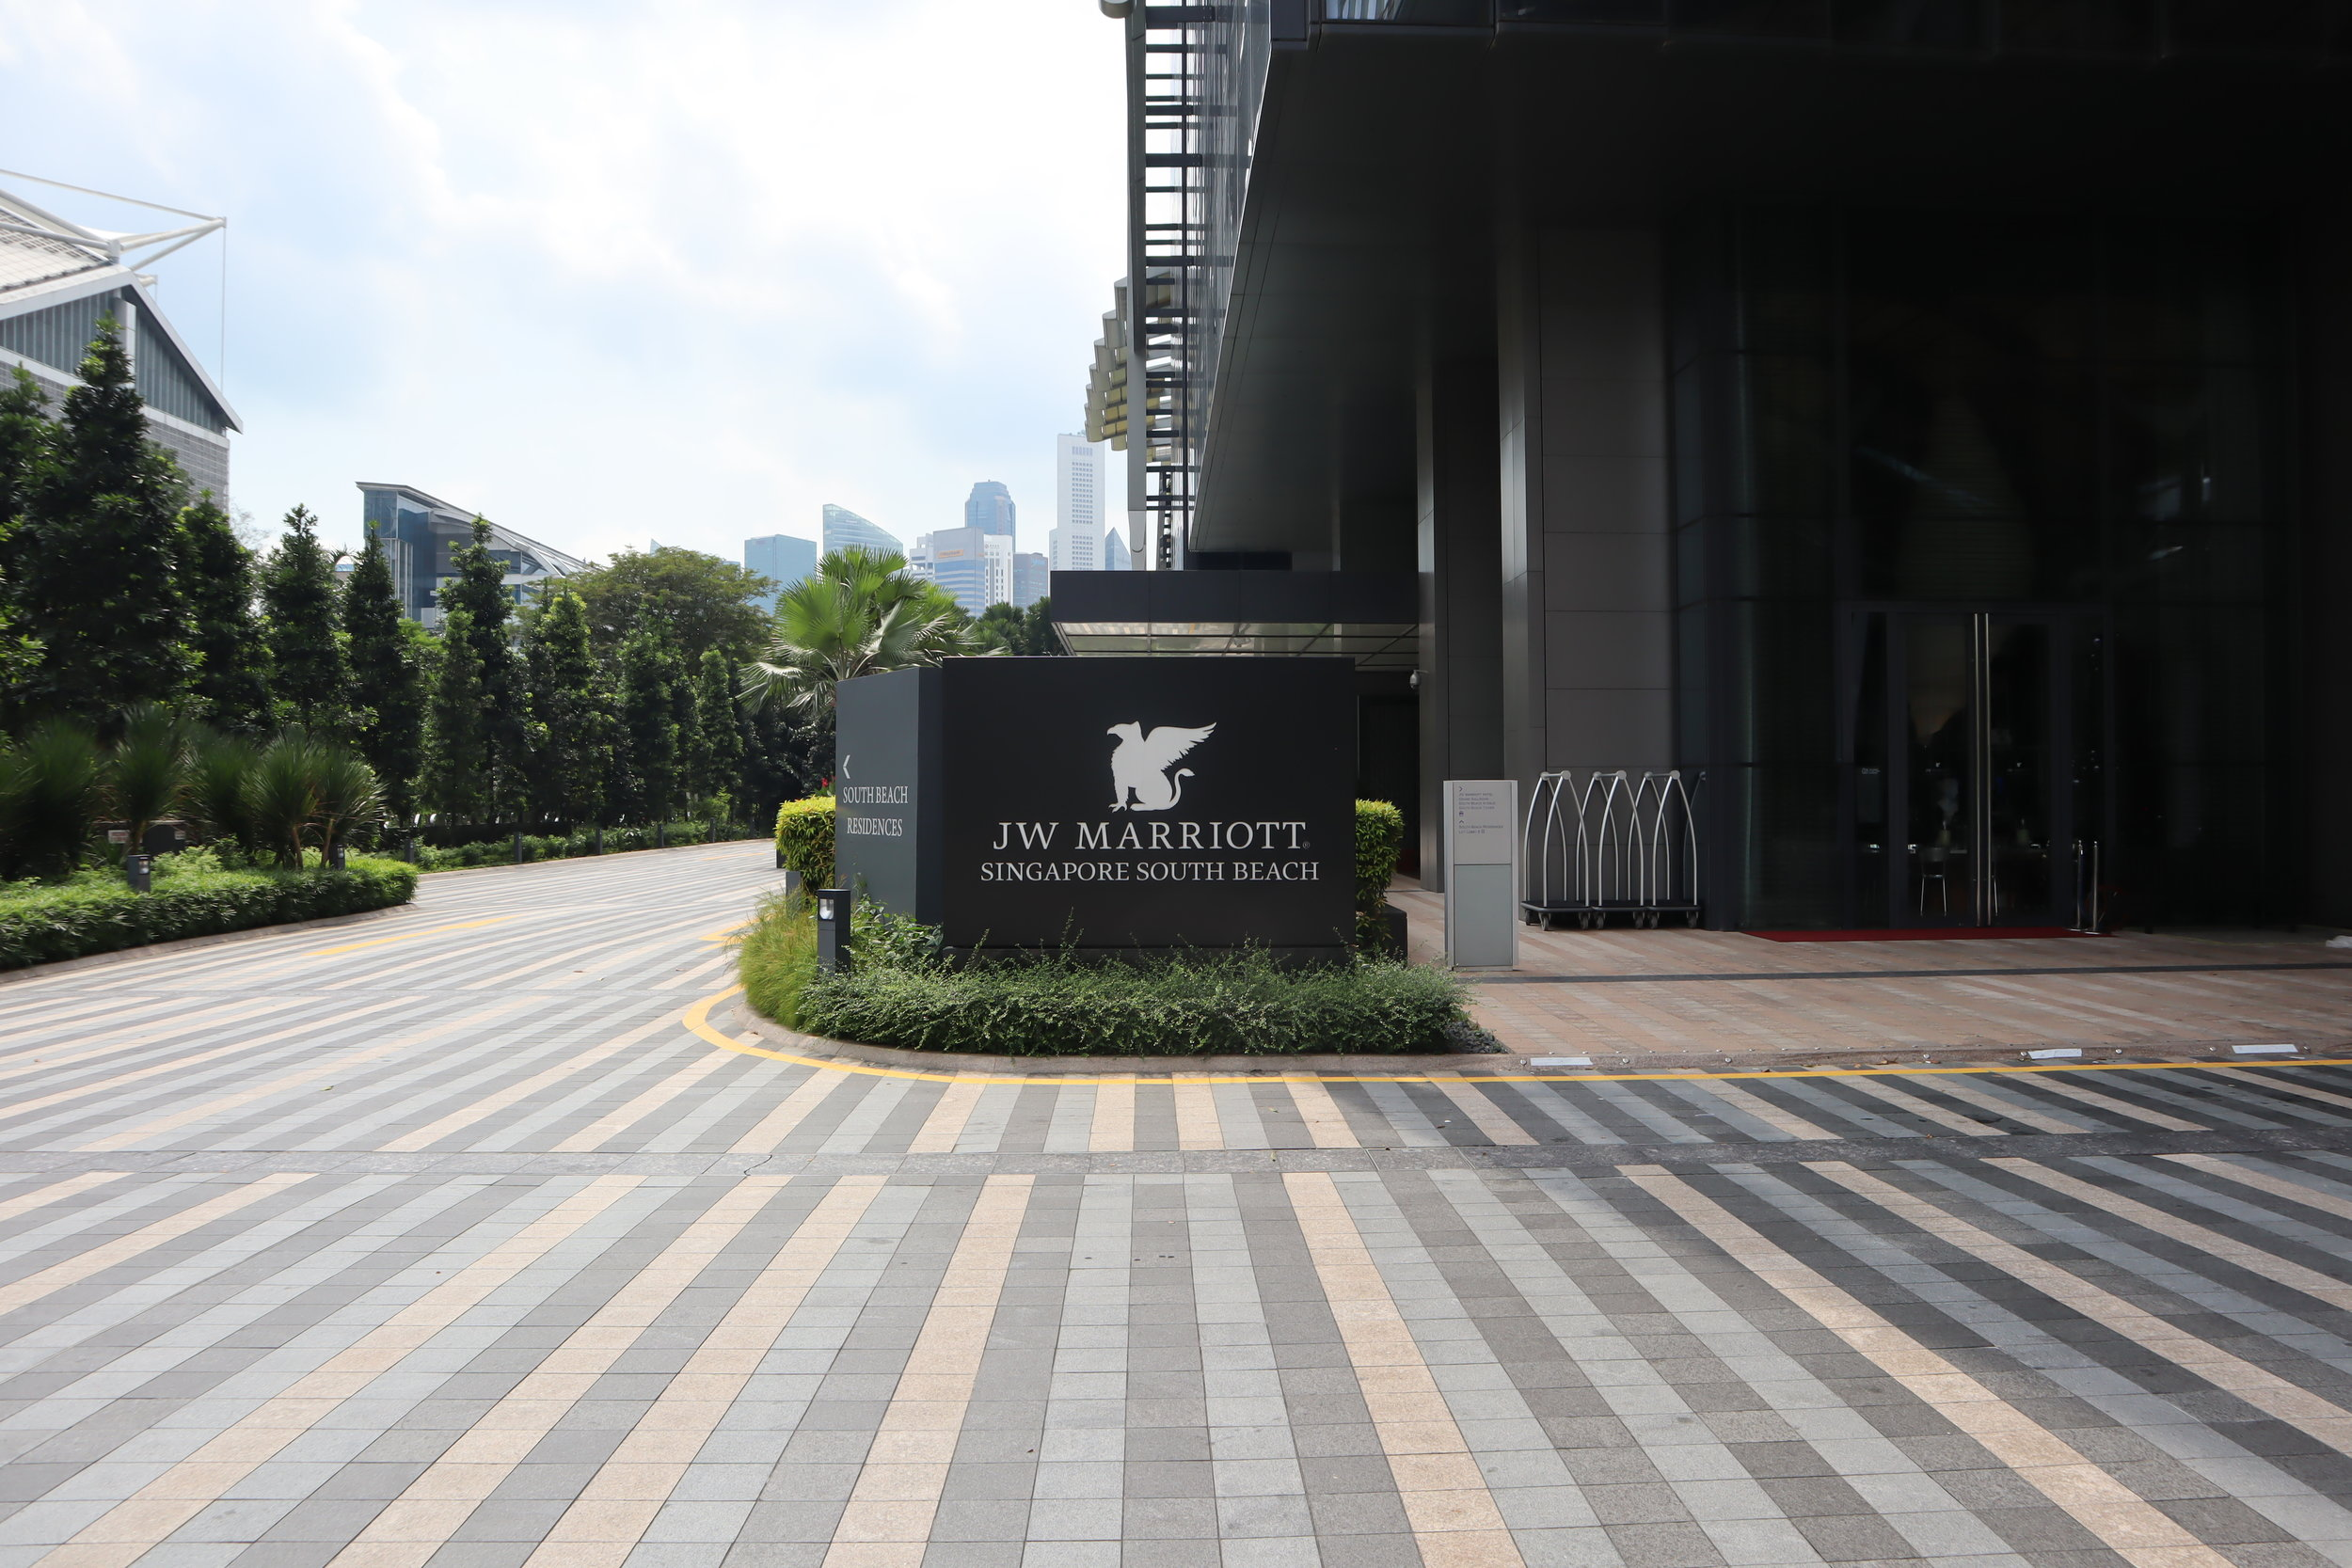 JW Marriott Singapore South Beach – Entrance sign